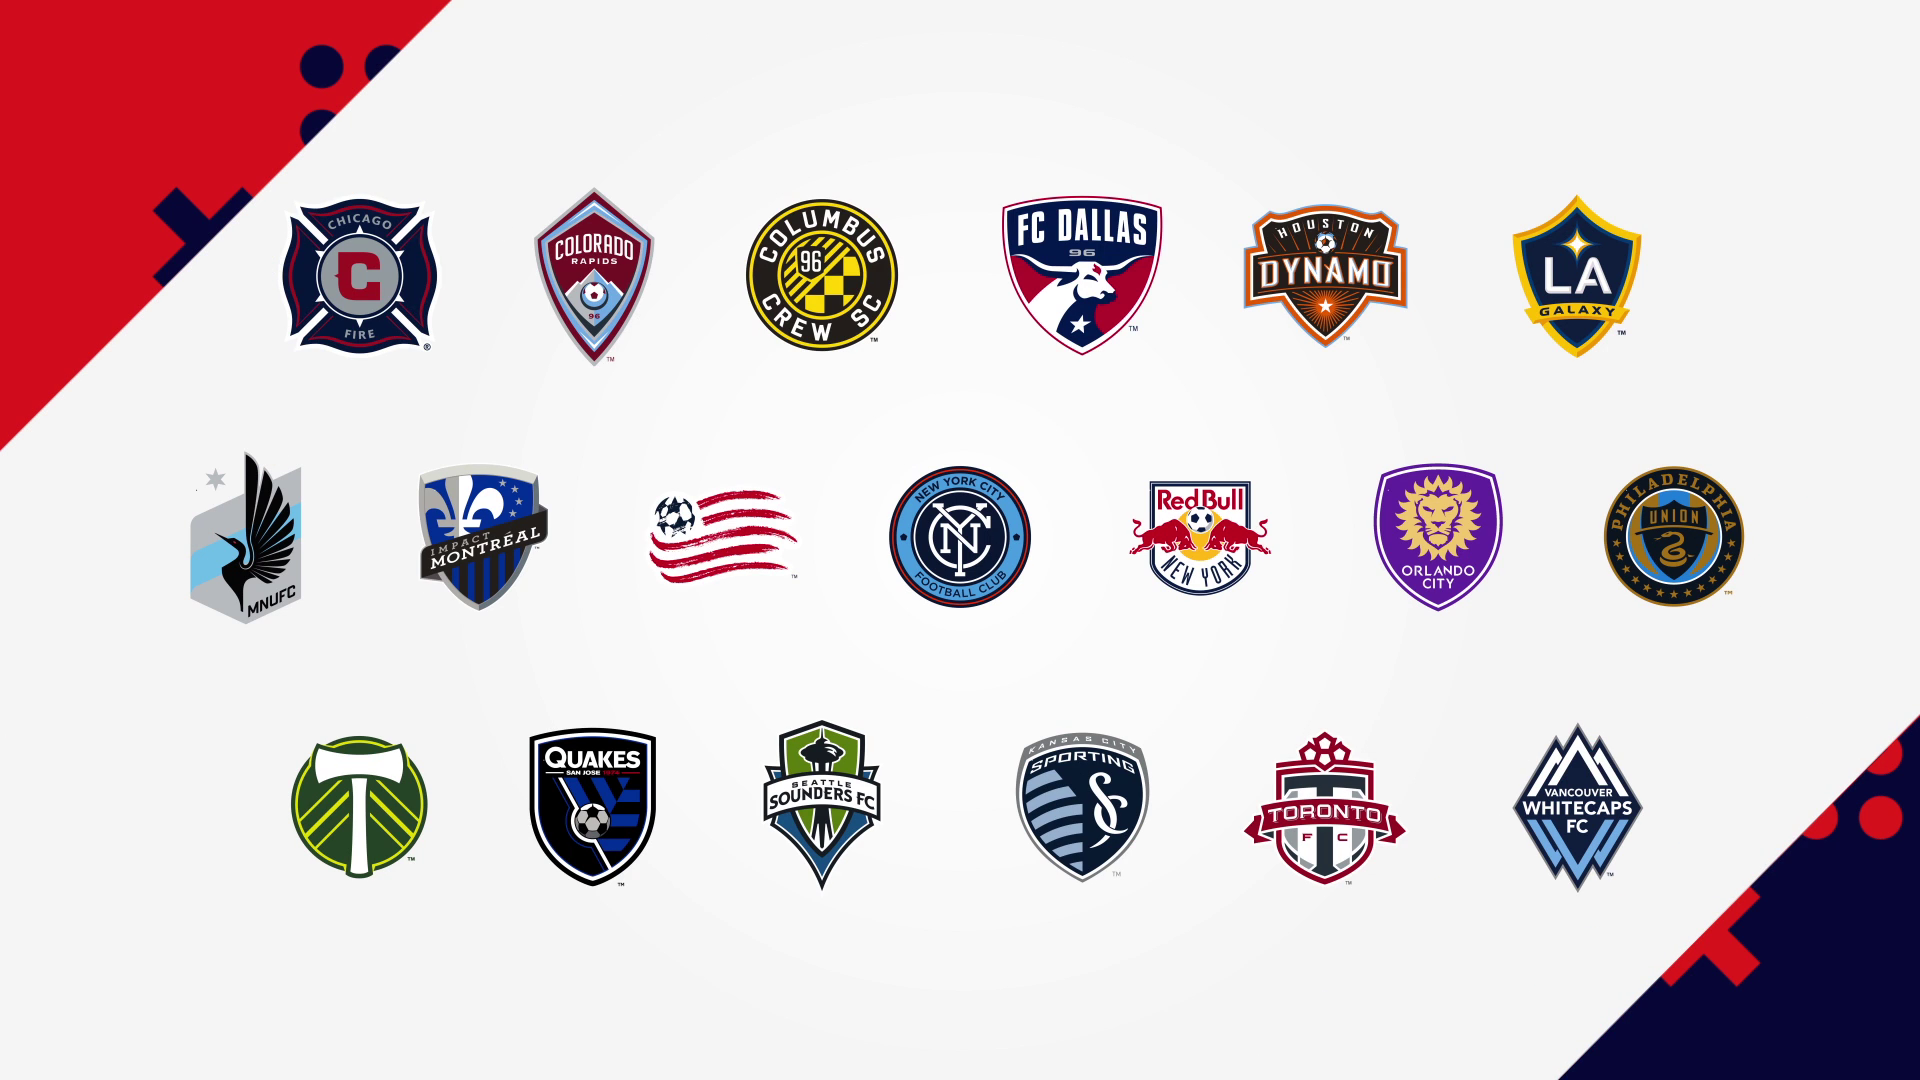 MLS announces competitive FIFA esports league with EA Sports